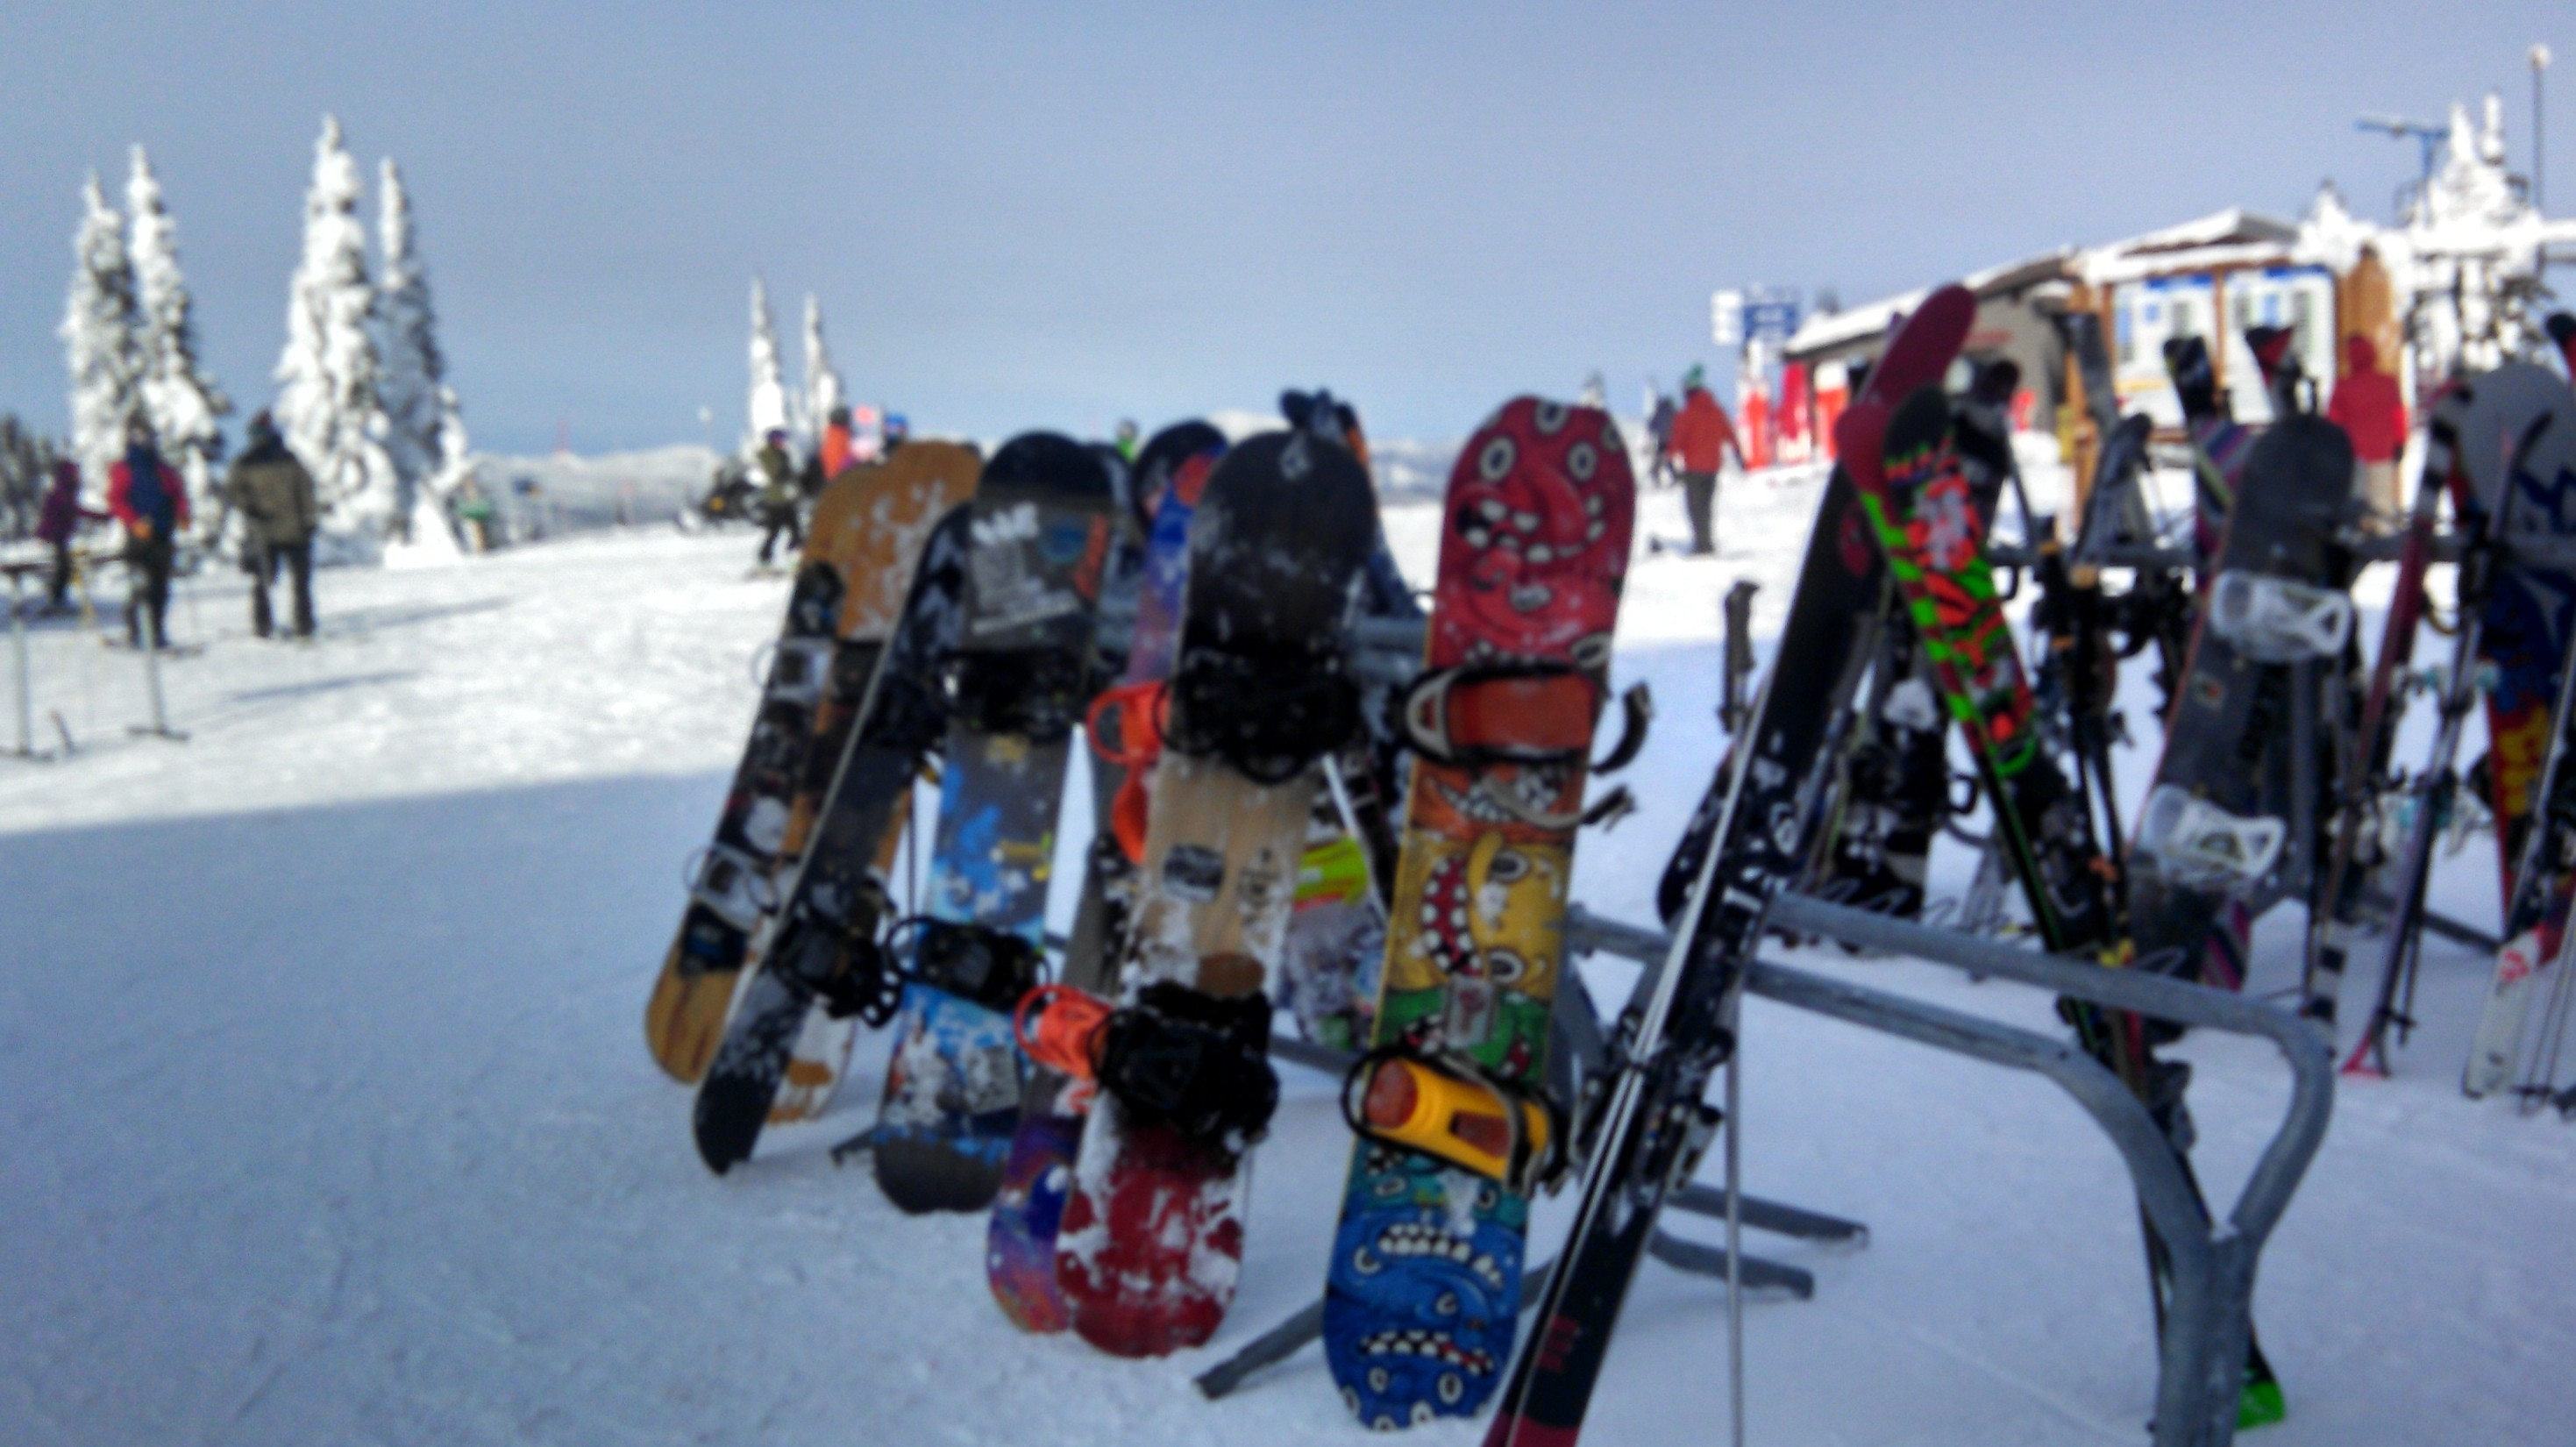 Colorful snowboards at the Summit